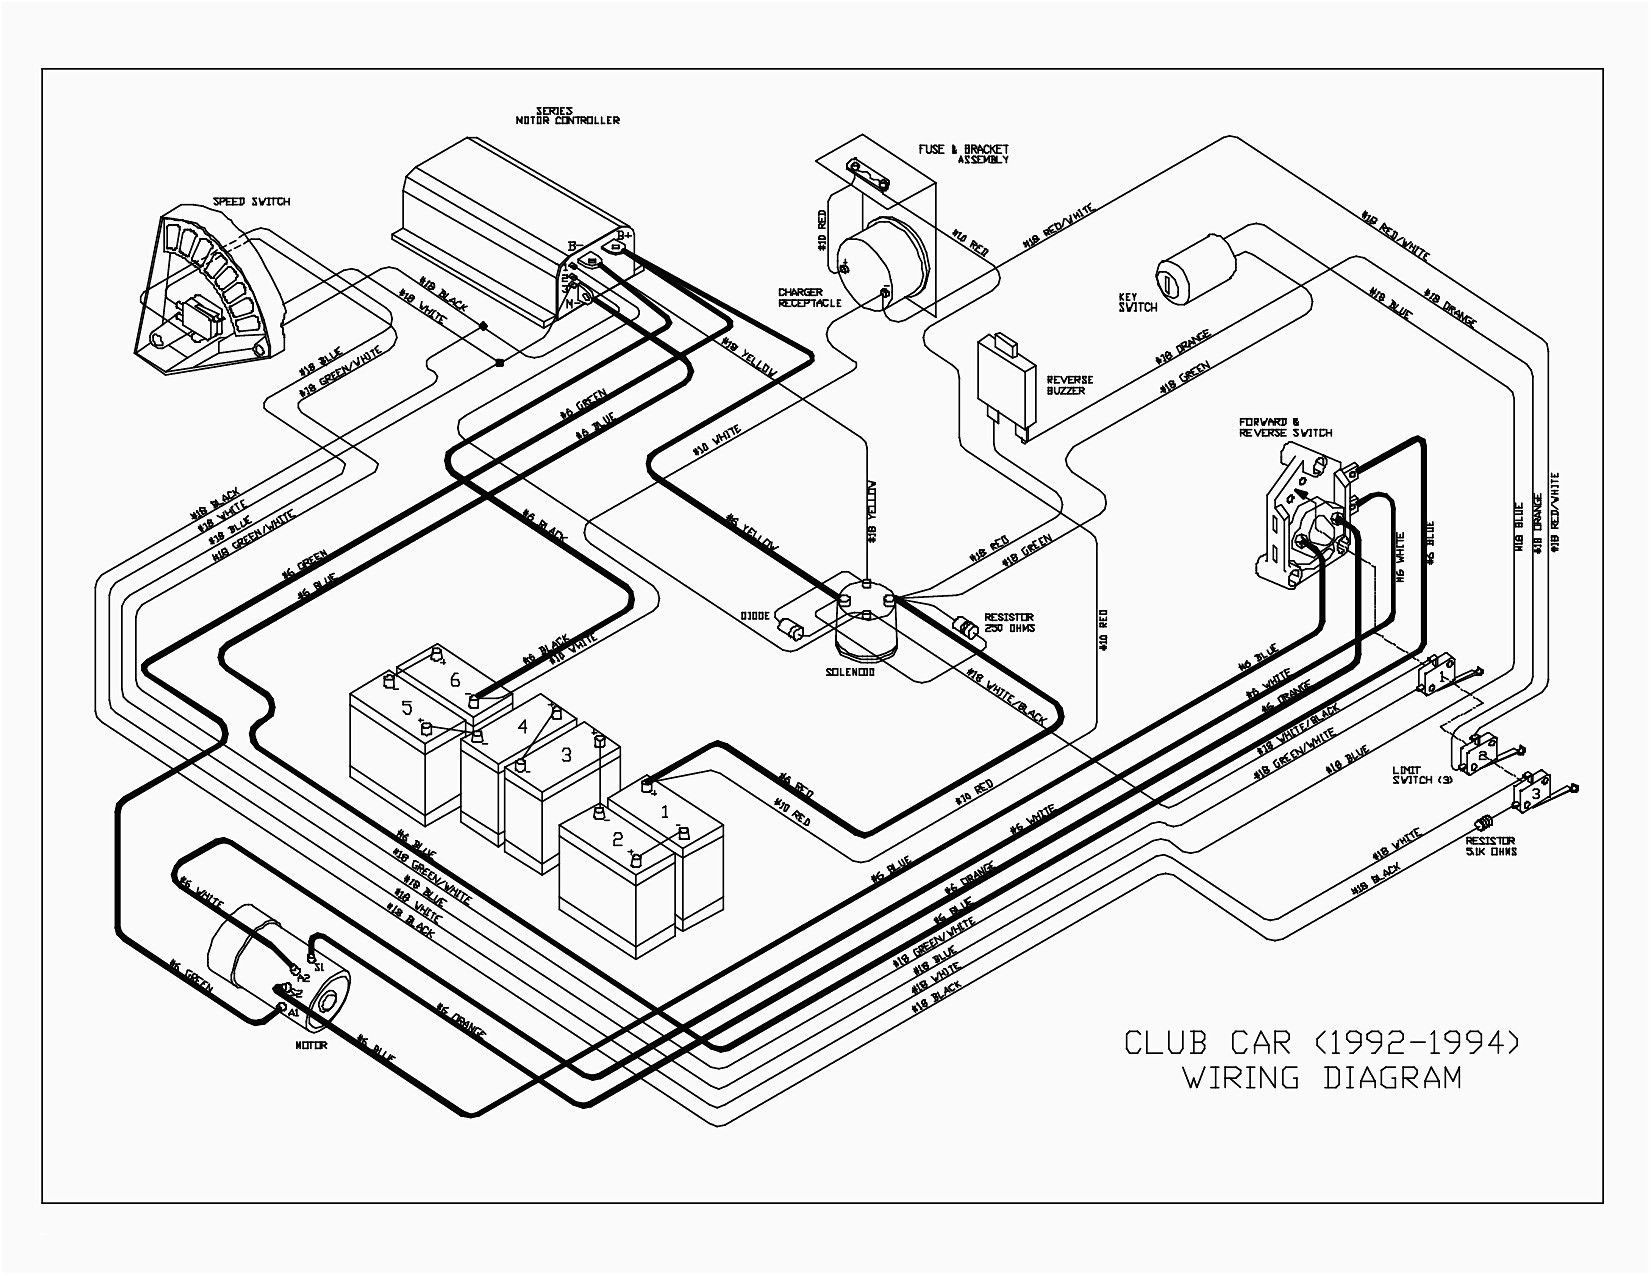 17 Simple Car Wiring Diagrams Design S Bacamajalah